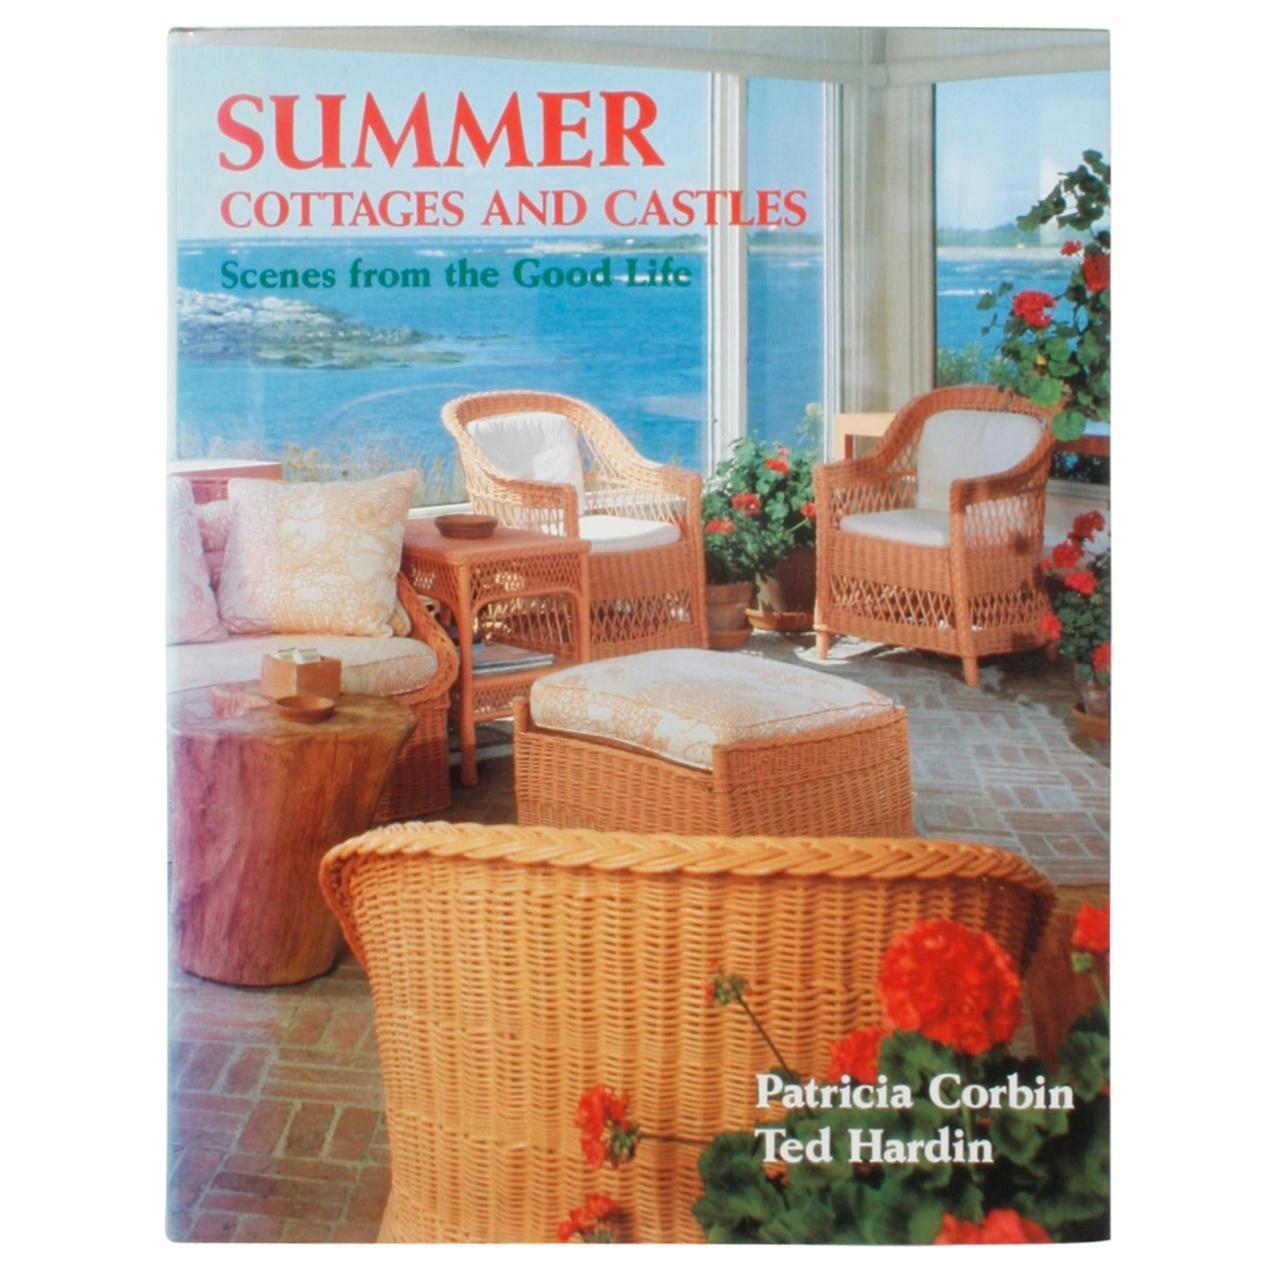 Summer Cottages and Castles, Scenes from the Good Life, First Edition